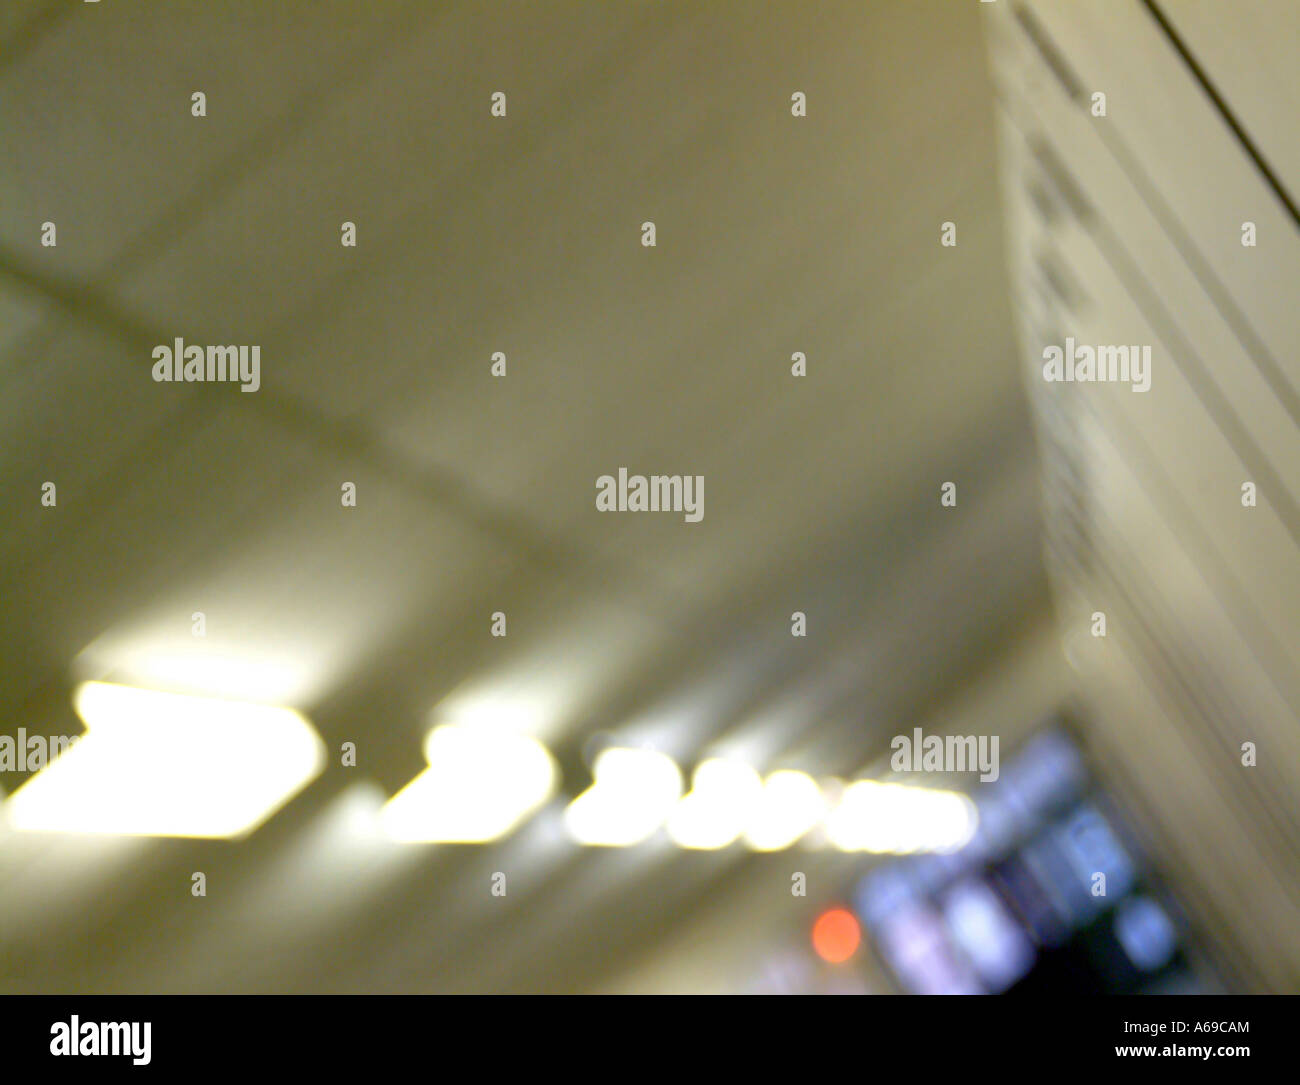 Blurred architectural abstract of hallway lighting. - Stock Image